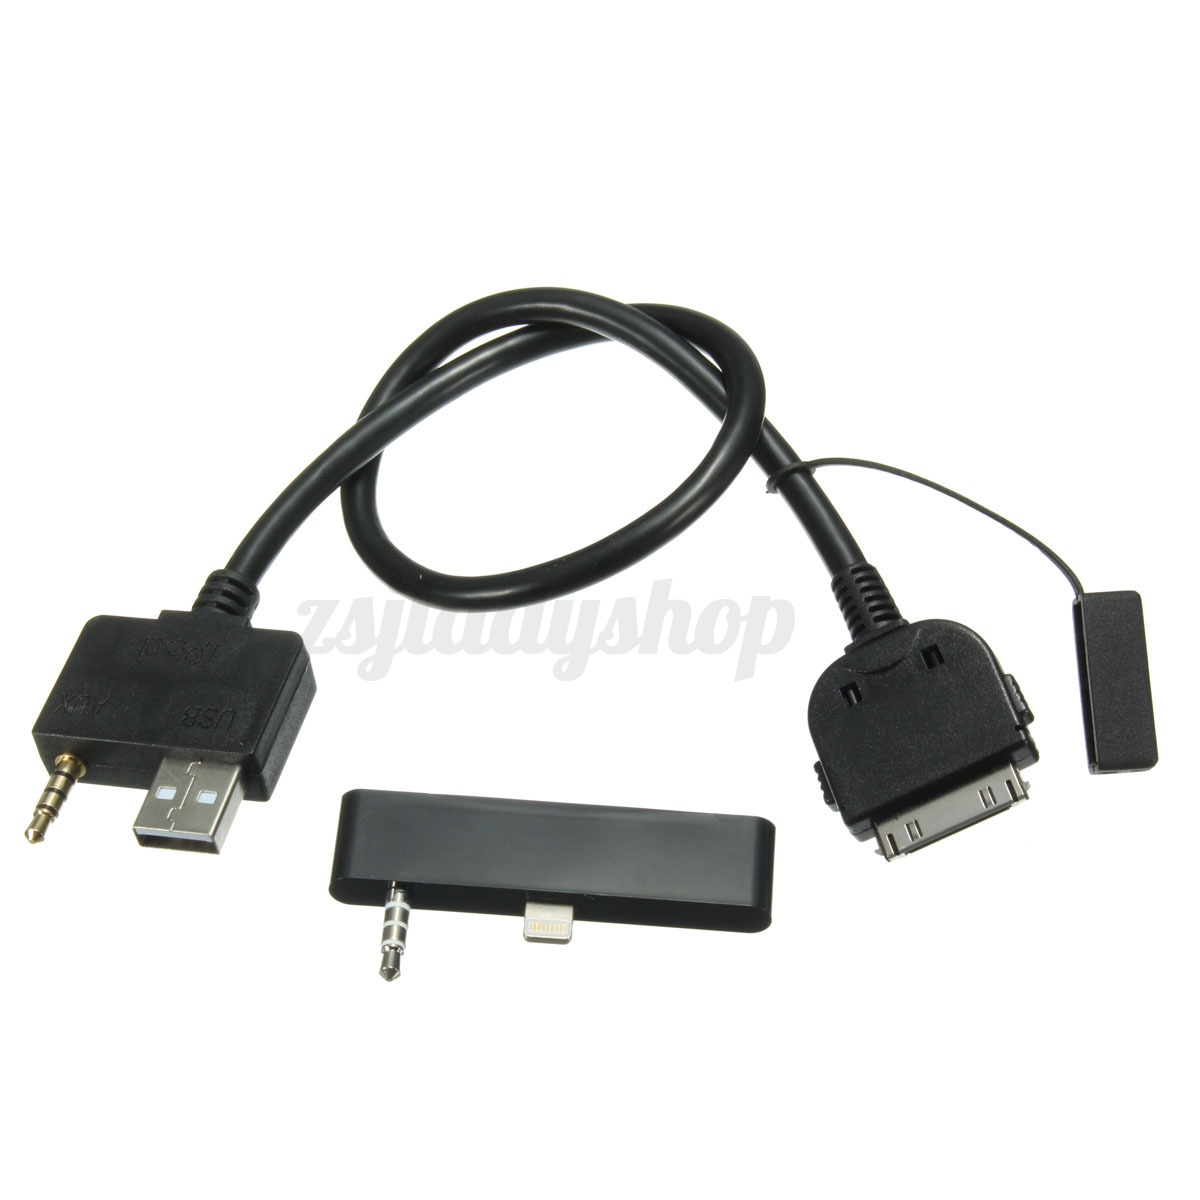 aux adapter cable usb for iphone 5 6 6s ipod kia